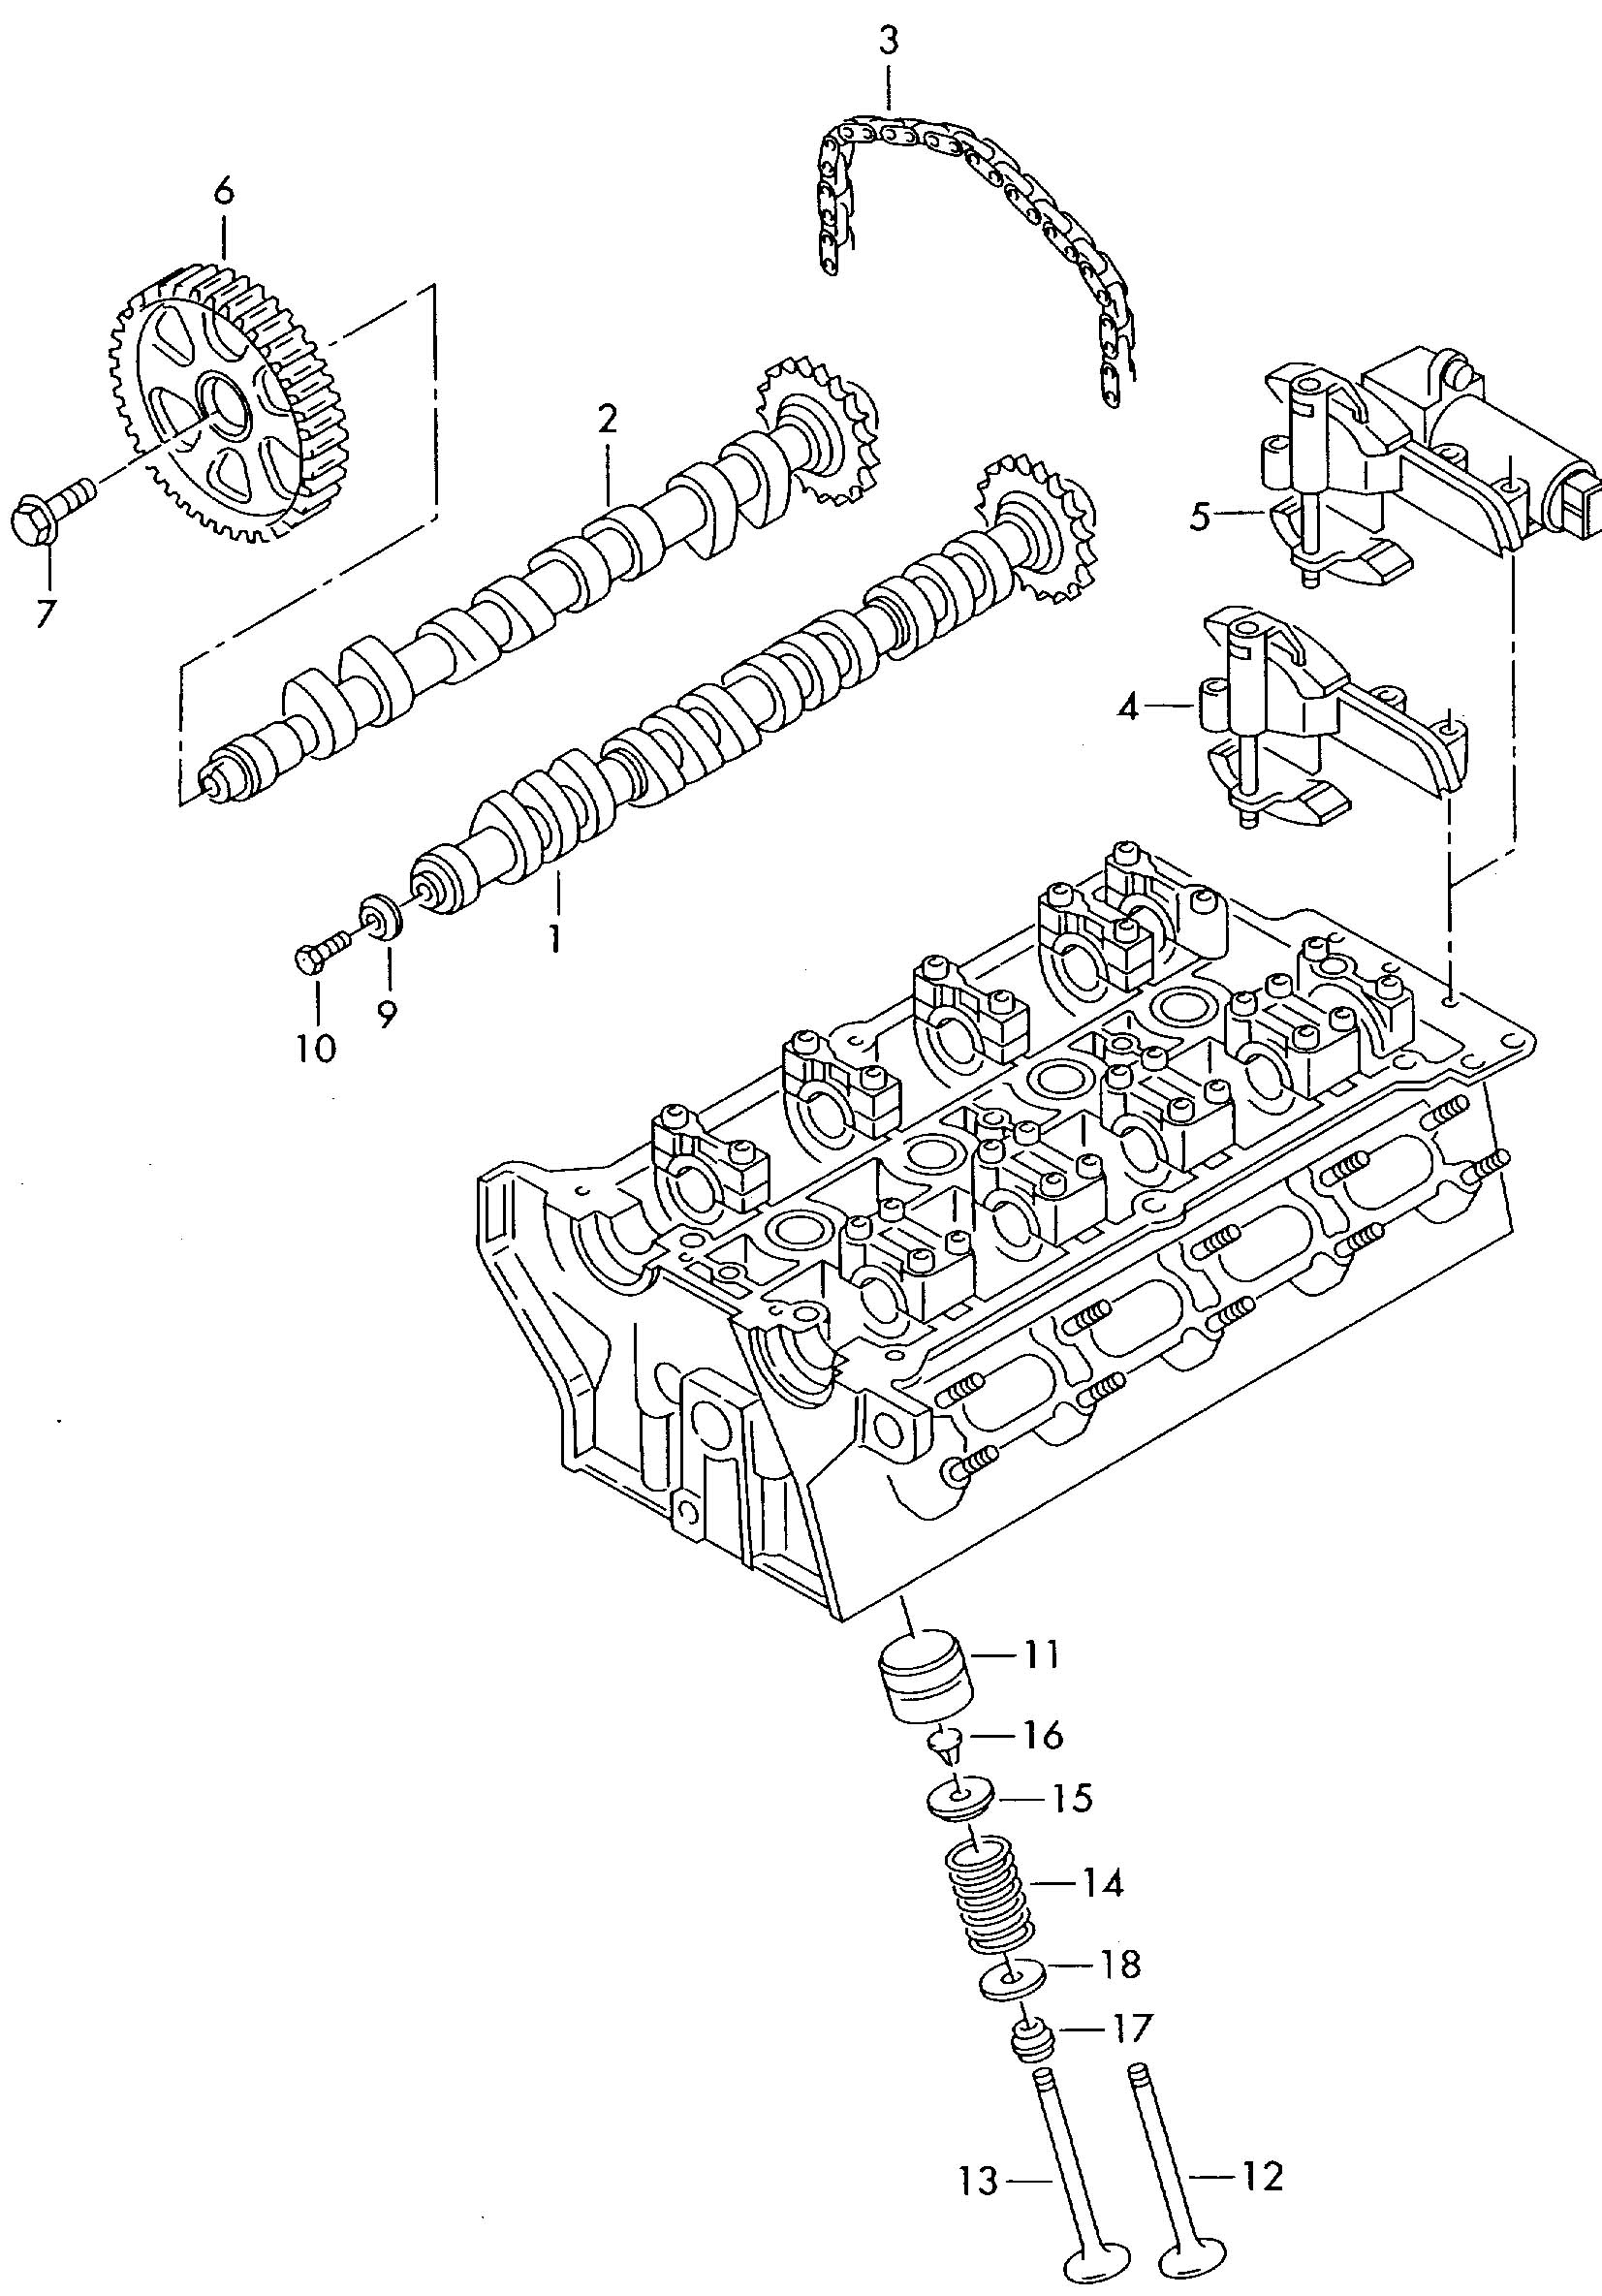 Diagram Of Volkswagen Beetle Engine